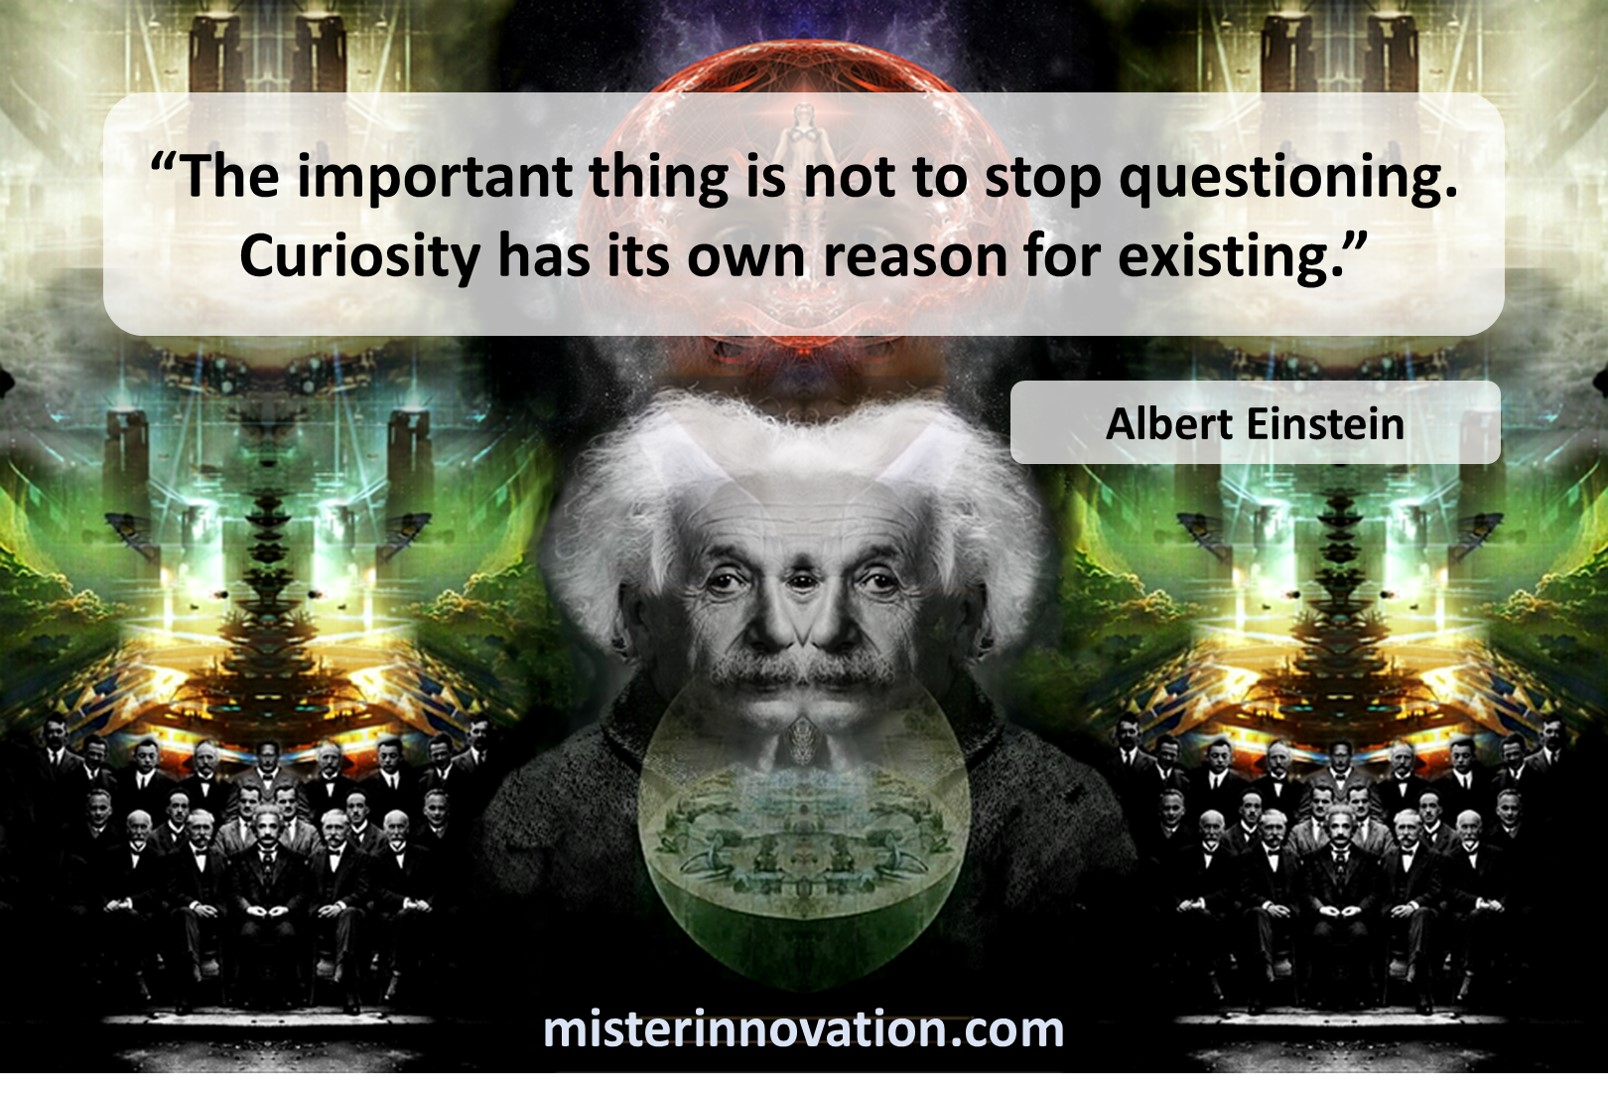 Albert Einstein Quote on Curiosity and Questioning